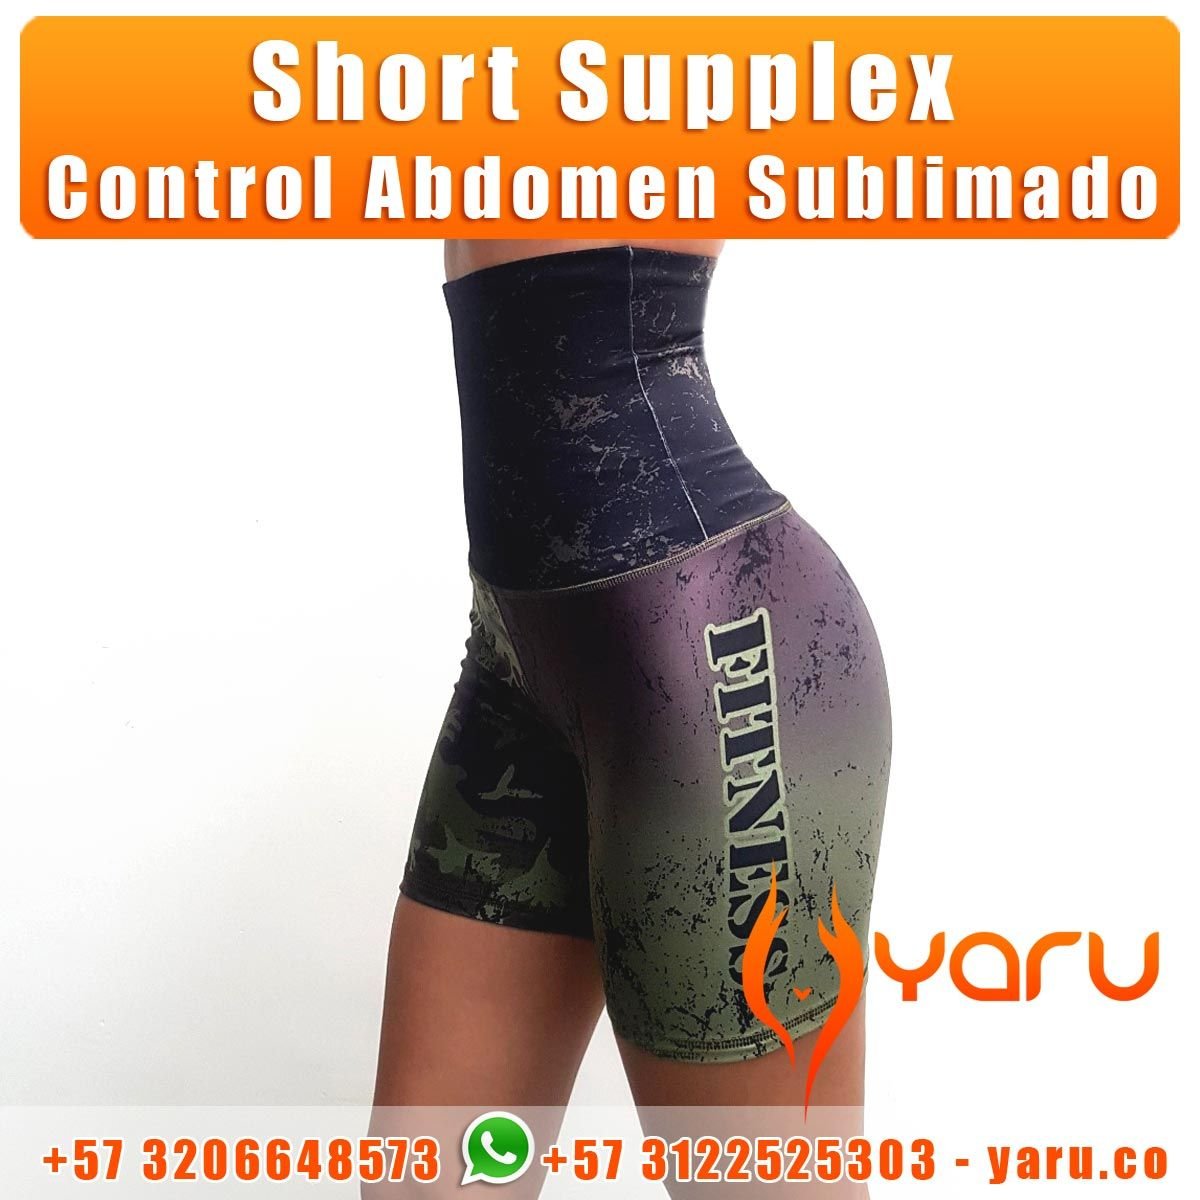 e676982194854 Pin by YARU FABRICA FAJAS COLOMBIA Exportadora on Short Supplex Sublimado  Control Abdomen